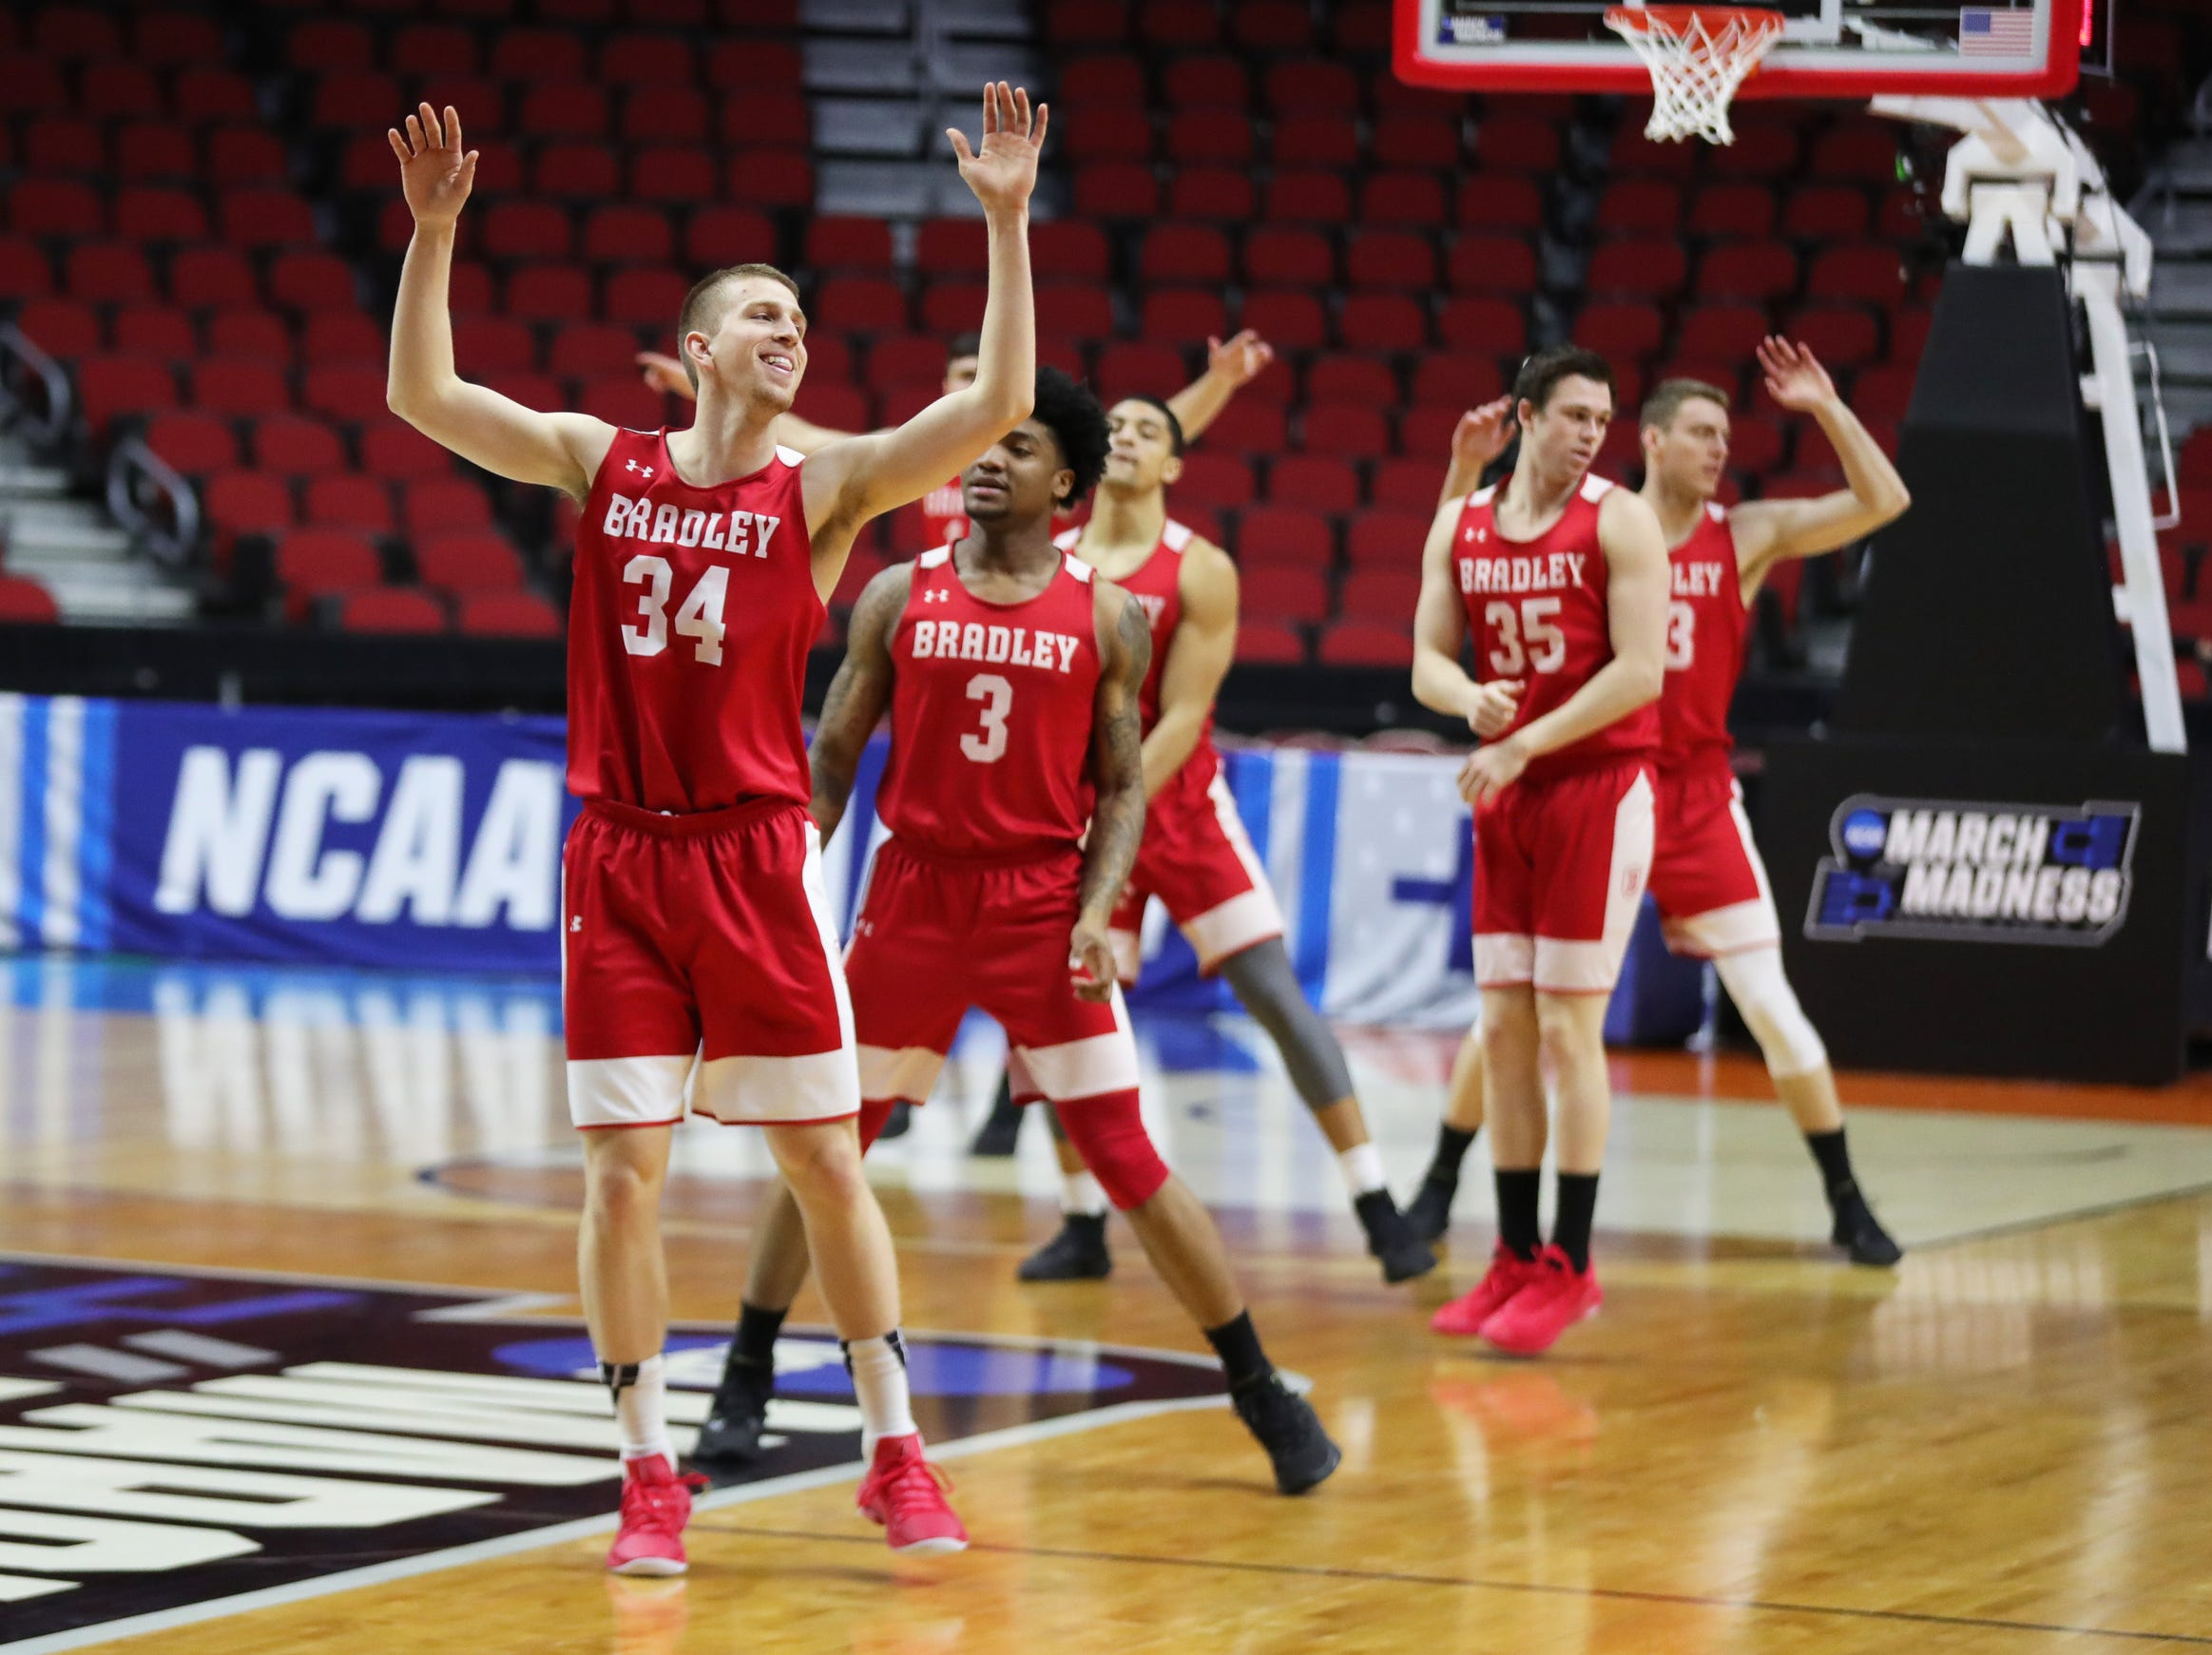 Bradley players workout for workout for their first-round NCAA tournament game against Michigan State on Wednesday, March 20, 2019 at Wells Fargo Arena in Des Moines, Iowa.